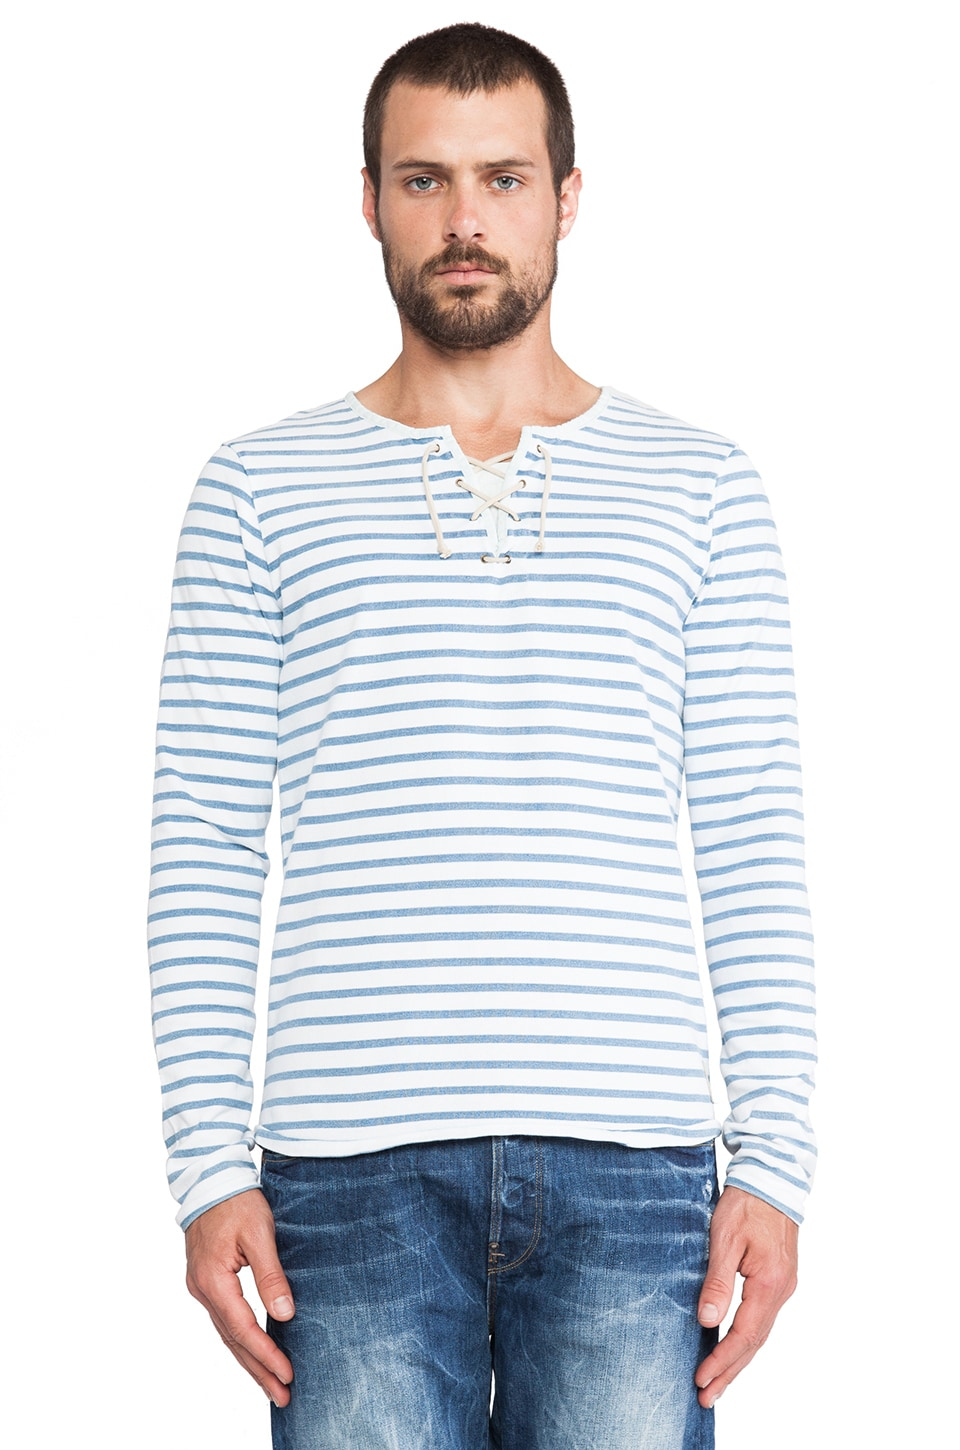 Scotch & Soda Long sleeve Striped Tee w/ Drawcord Closure in White/Indigo